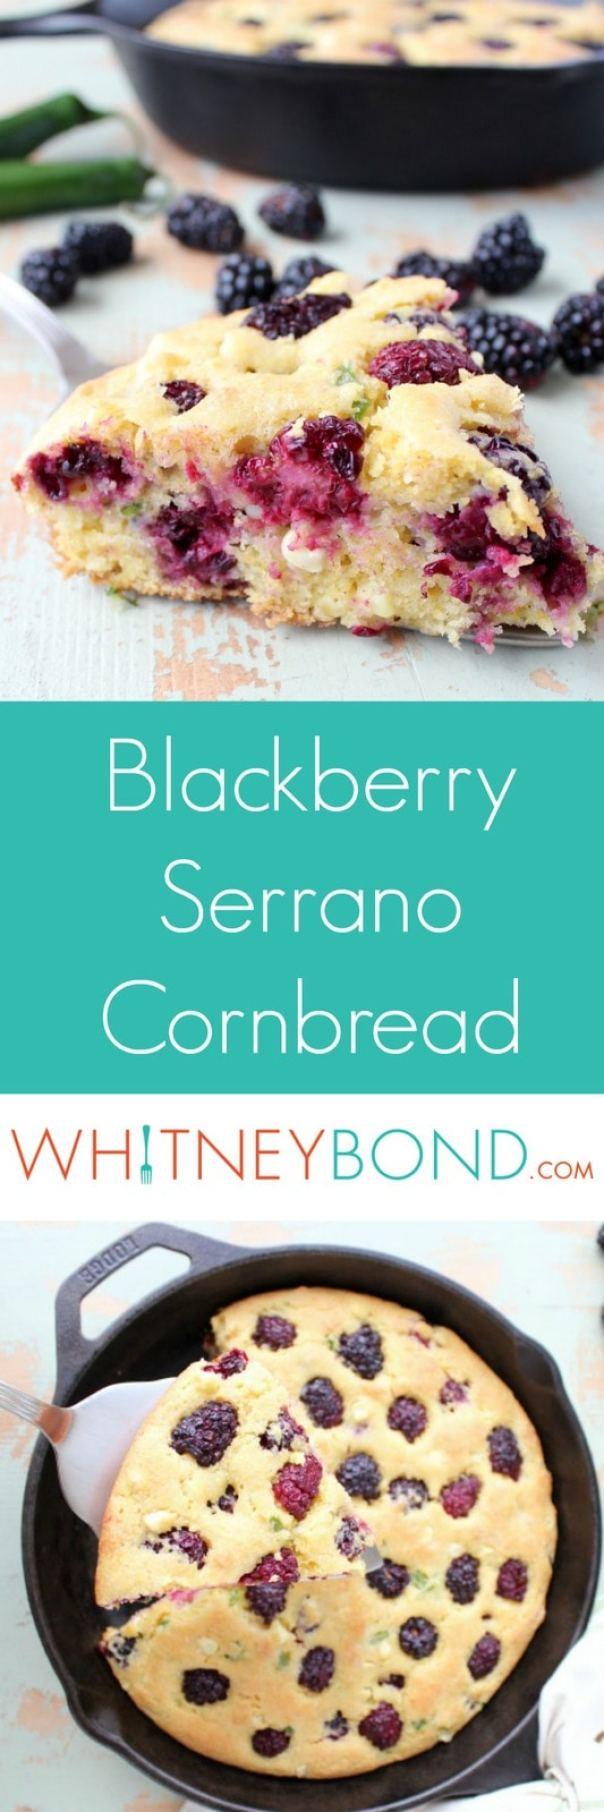 Fresh blackberries and serrano peppers add sweet, tangy and spicy flavors to this quick and easy homemade cornbread recipe.